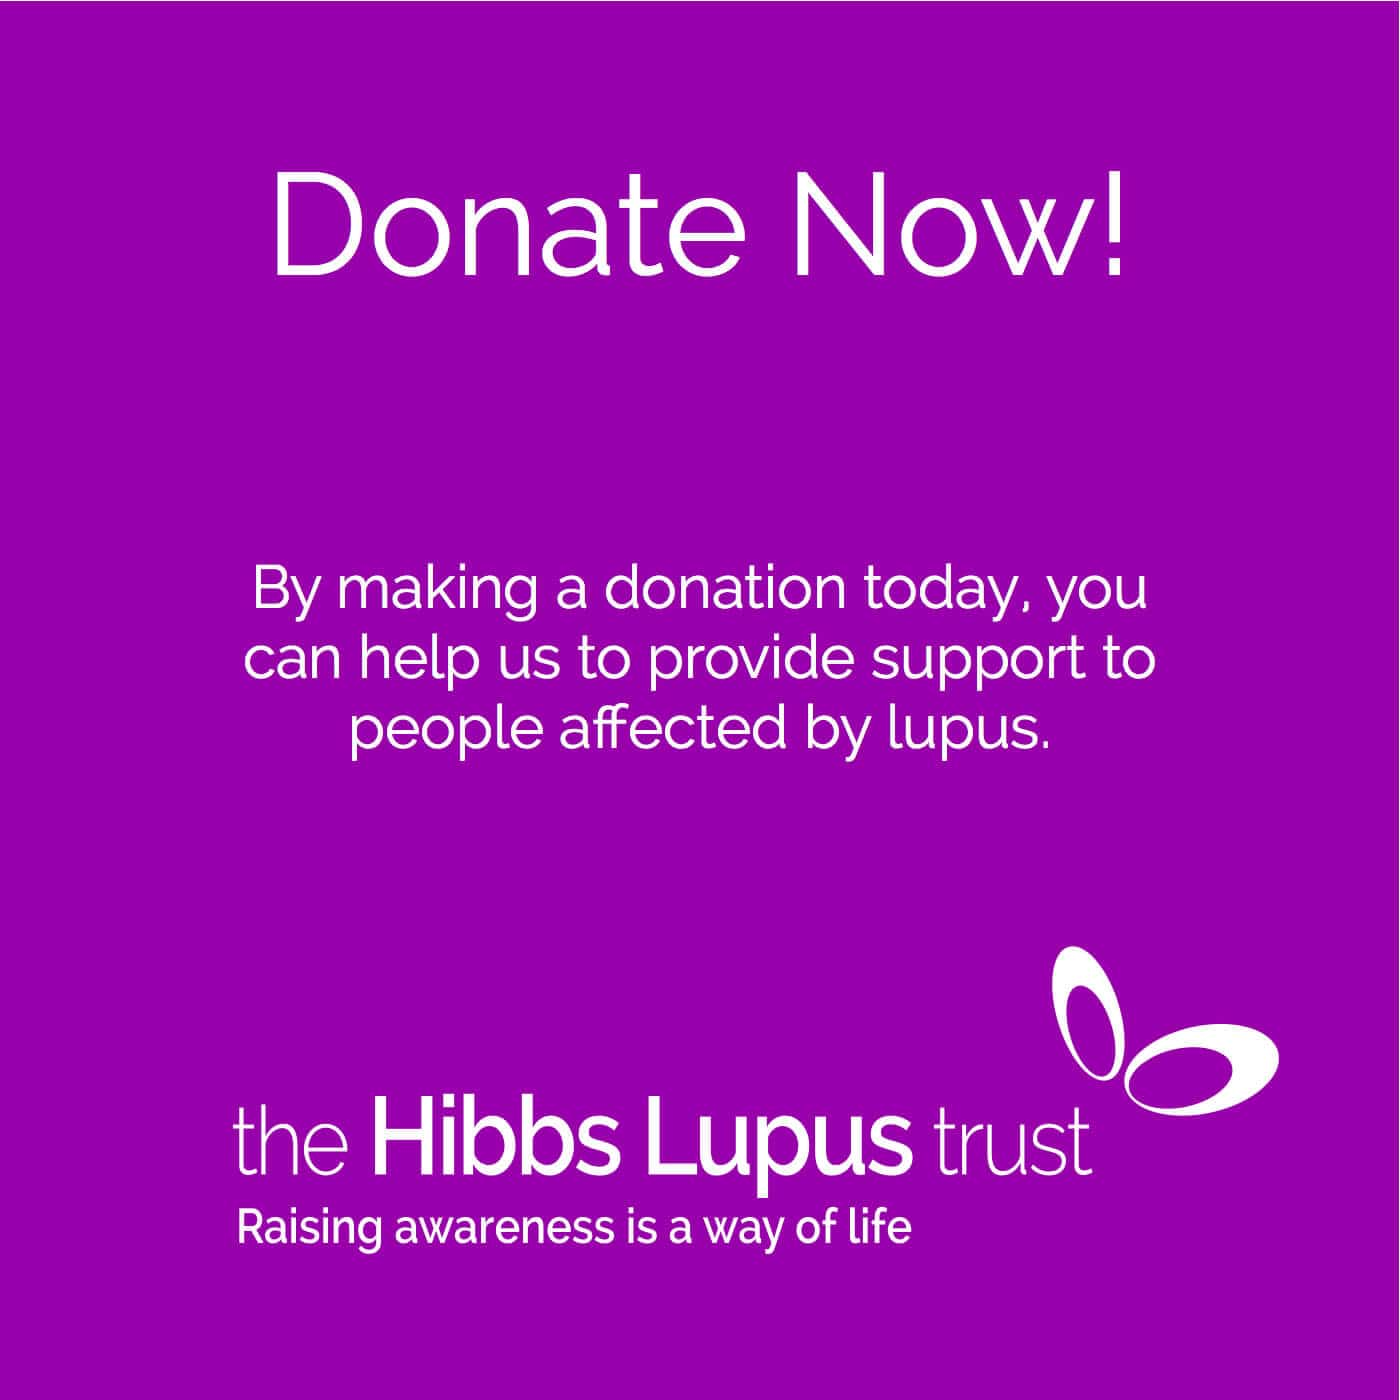 Lupus Donation - The Hibbs Lupus Trust